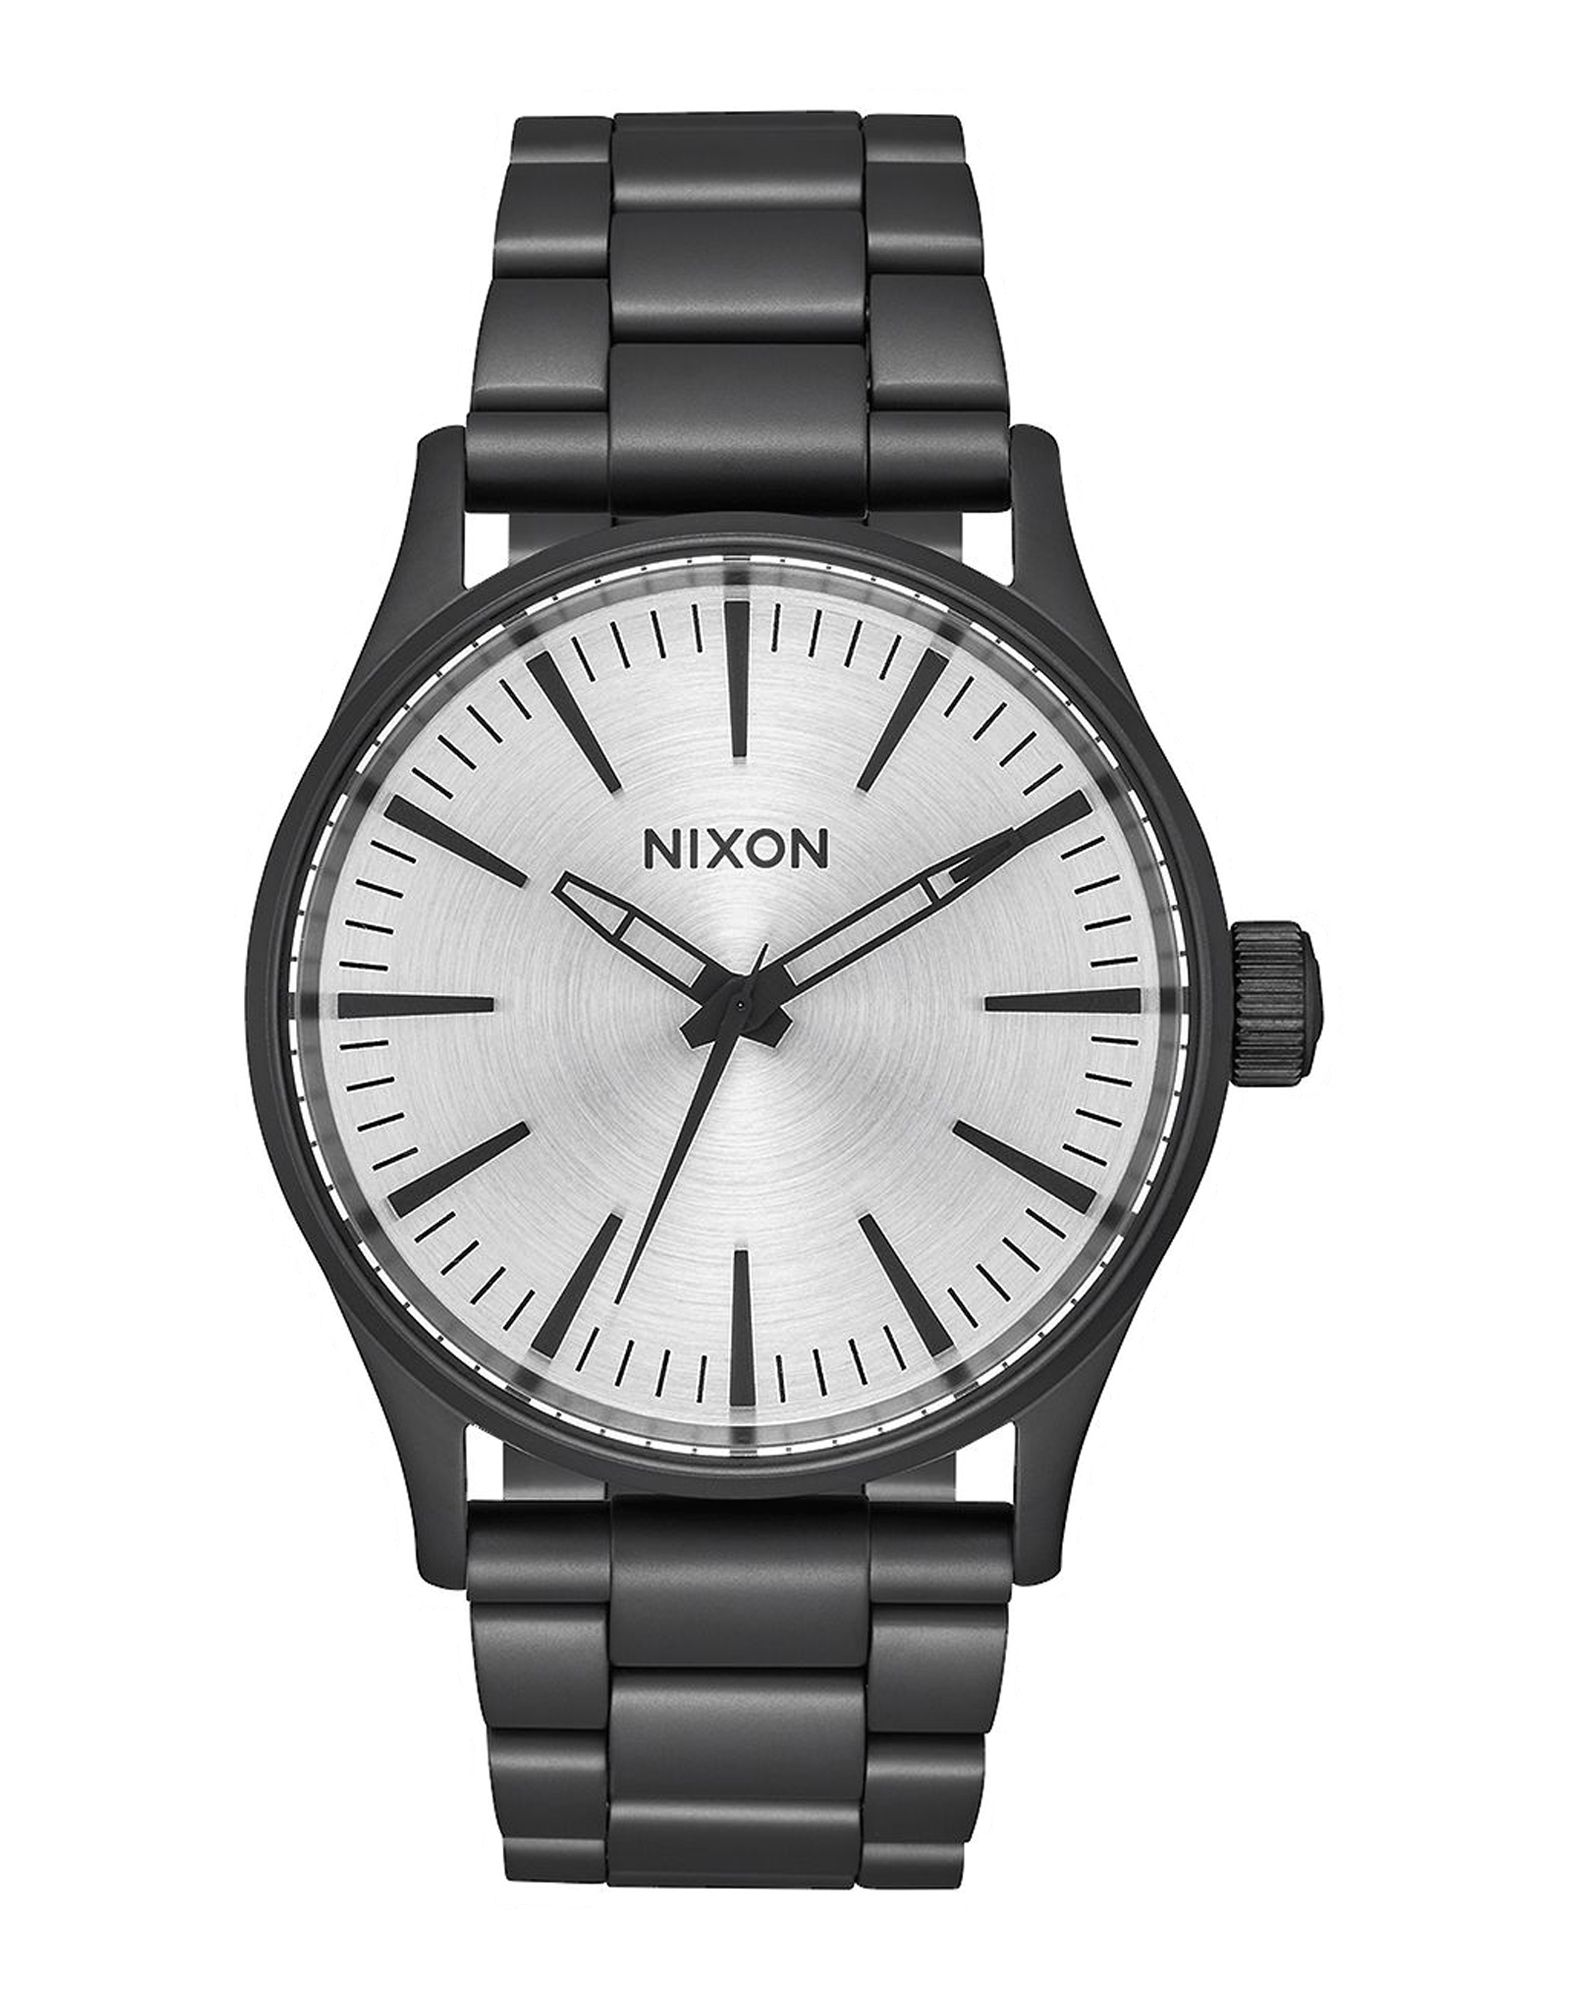 NIXON Наручные часы часы nixon time teller deluxe leather navy sunray brow